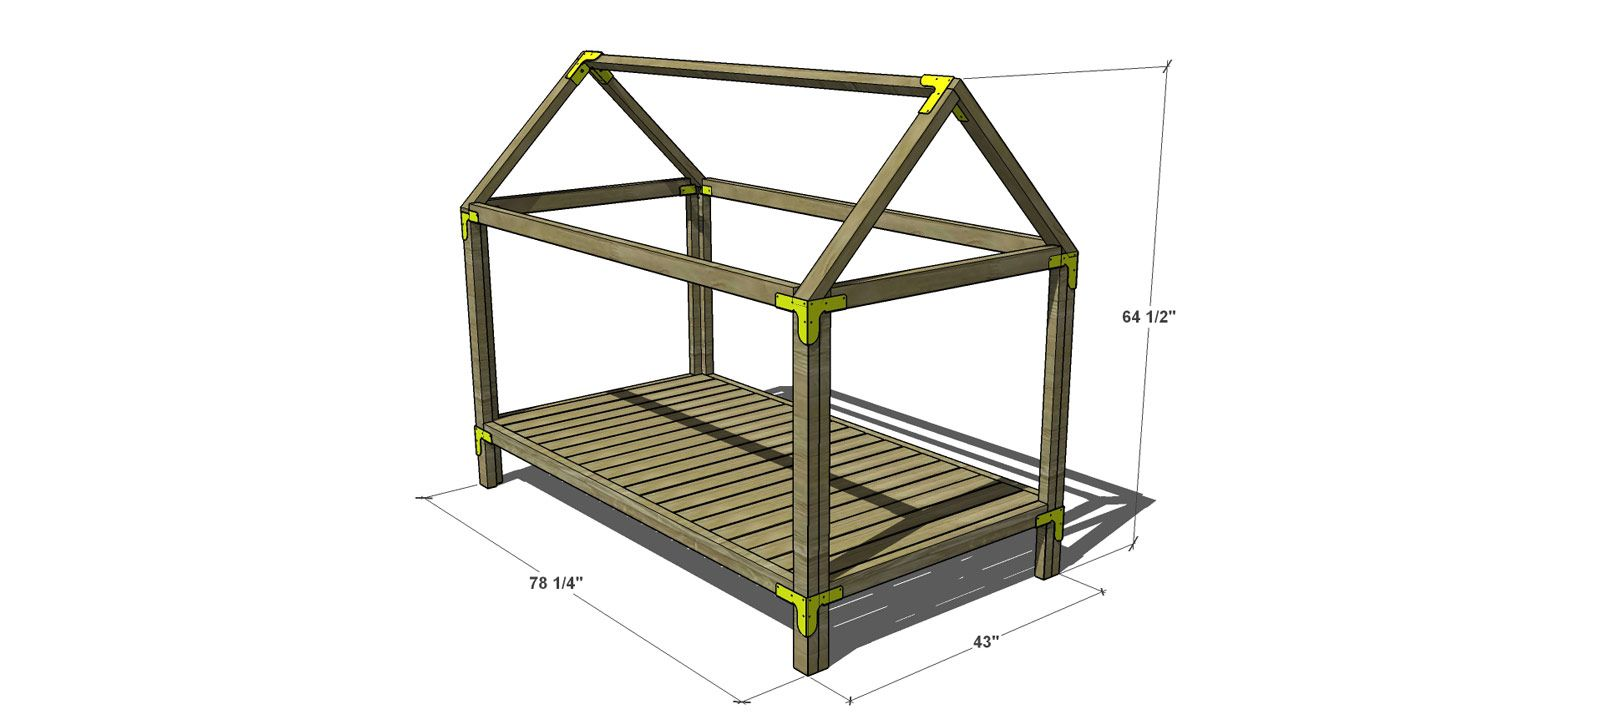 Free diy plans to build a twin sized house bed and